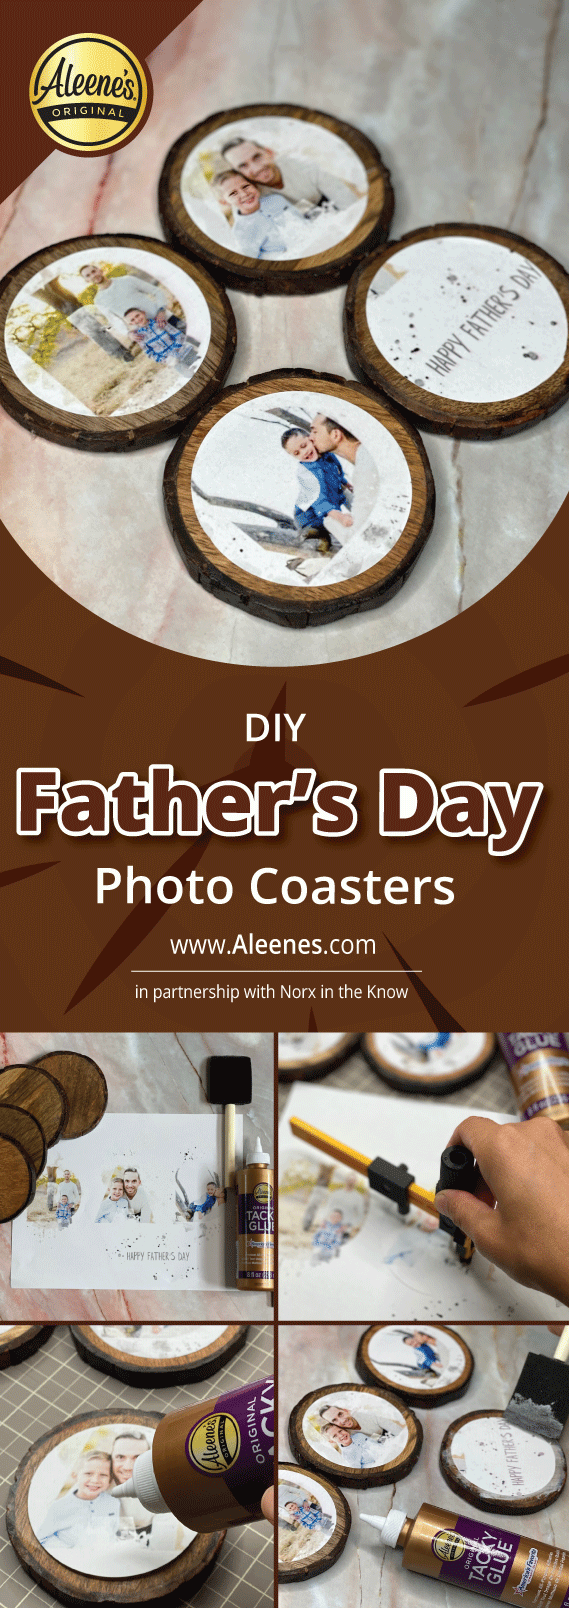 DIY Father's Day Photo Coasters